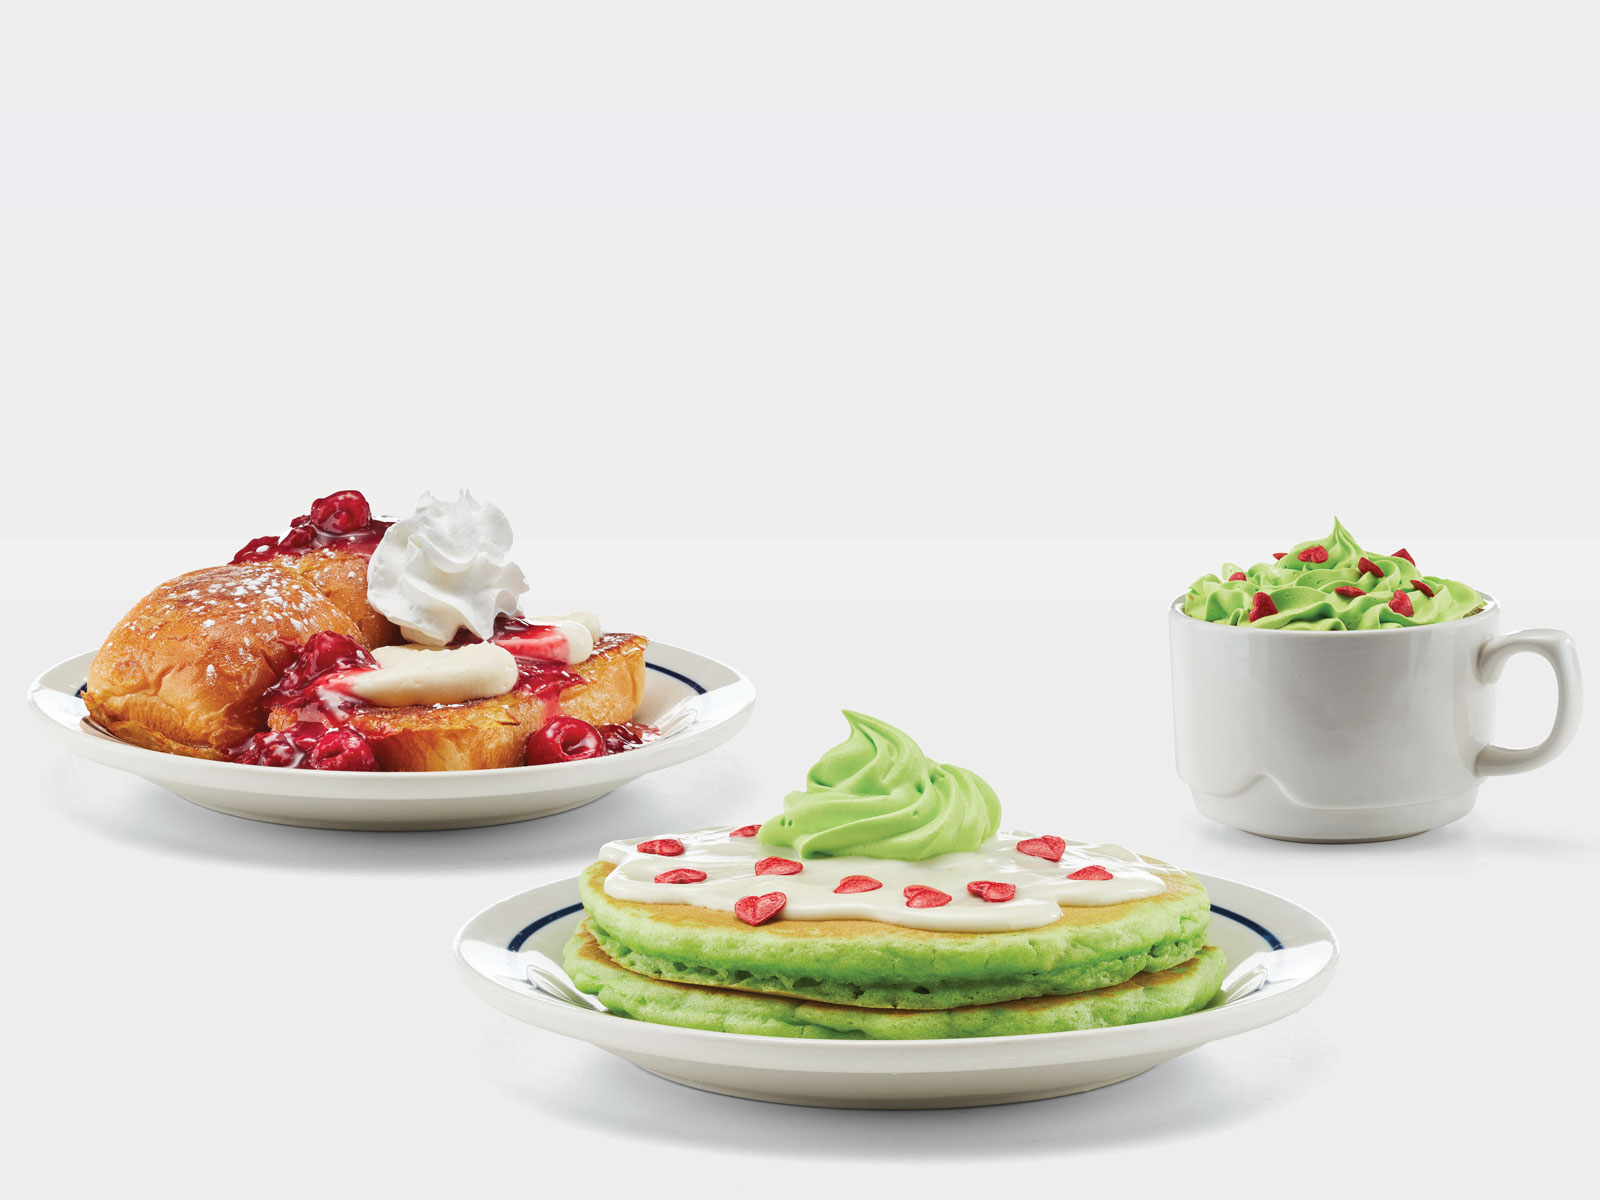 IHOP Adds Official 'Grinch' Menu Items for the Holidays